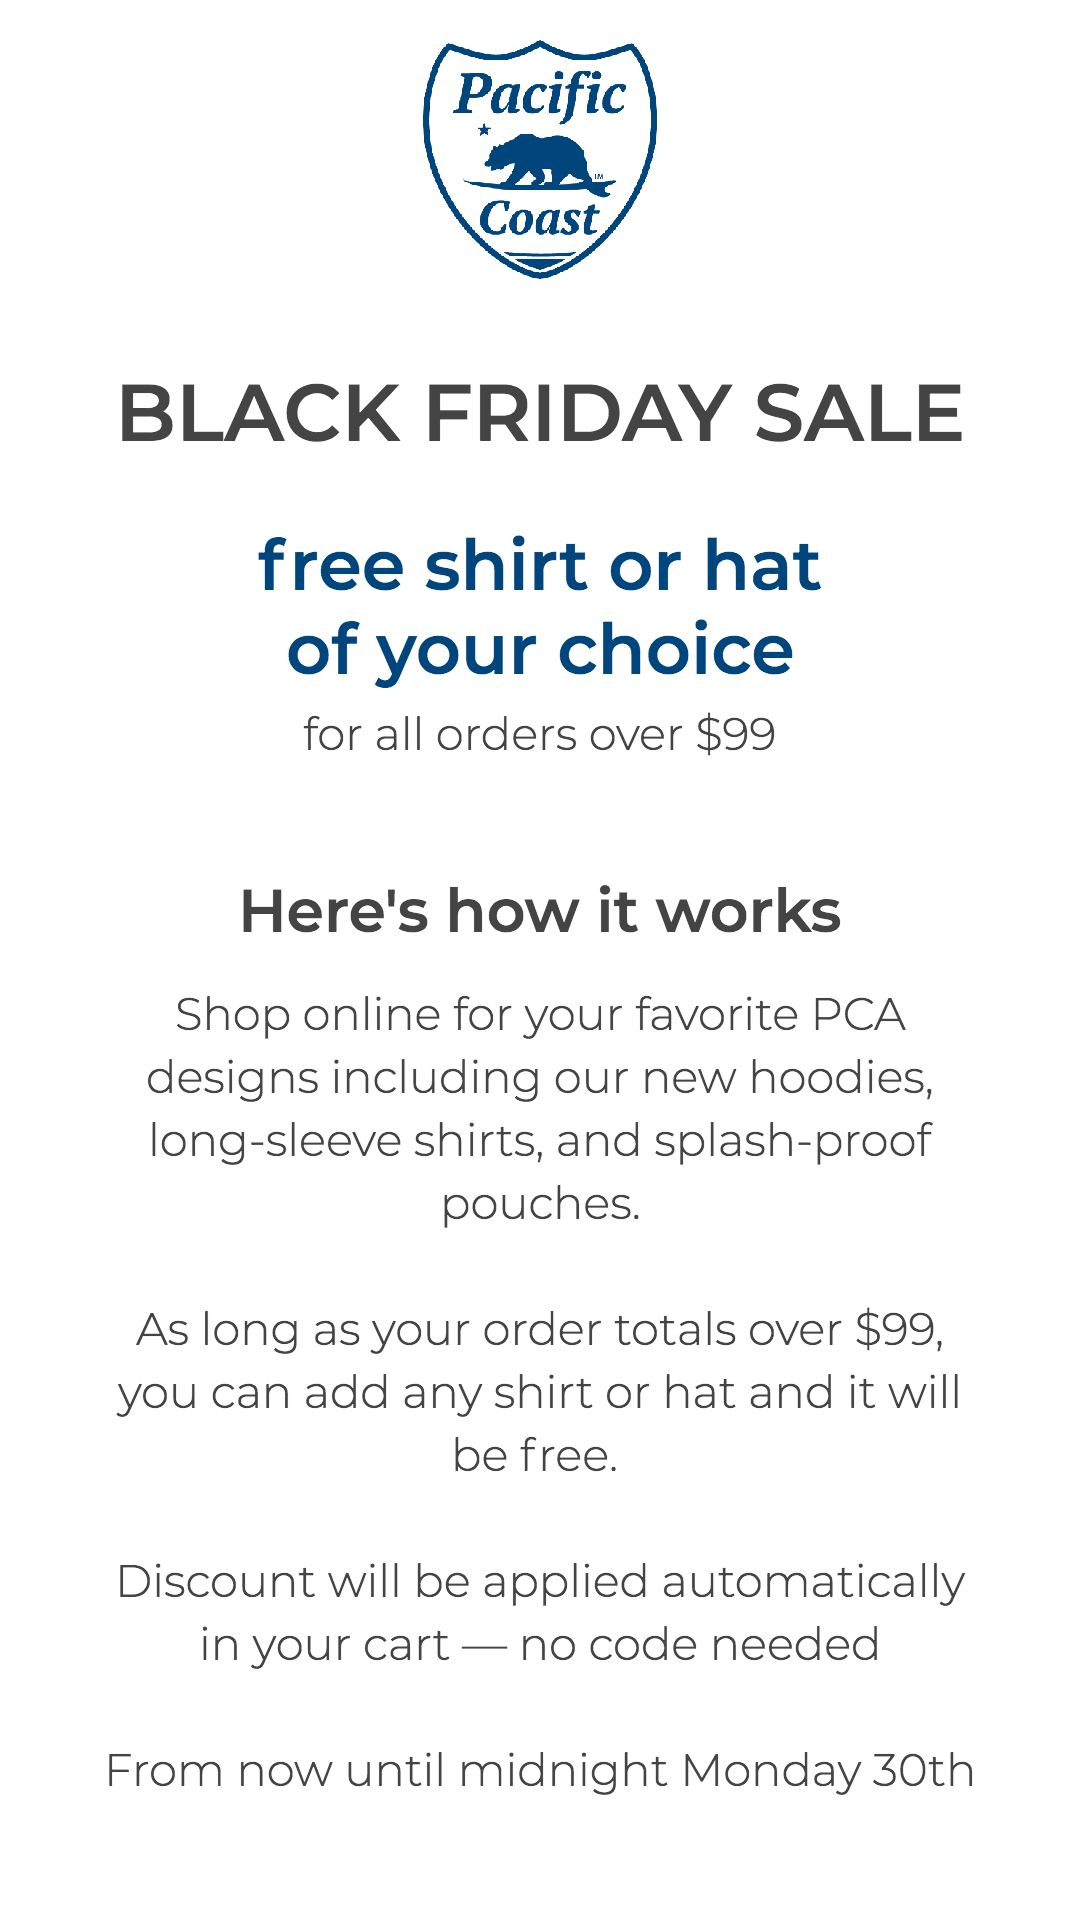 Black Friday 2020 - Free Hat or Shirt on any order $99+